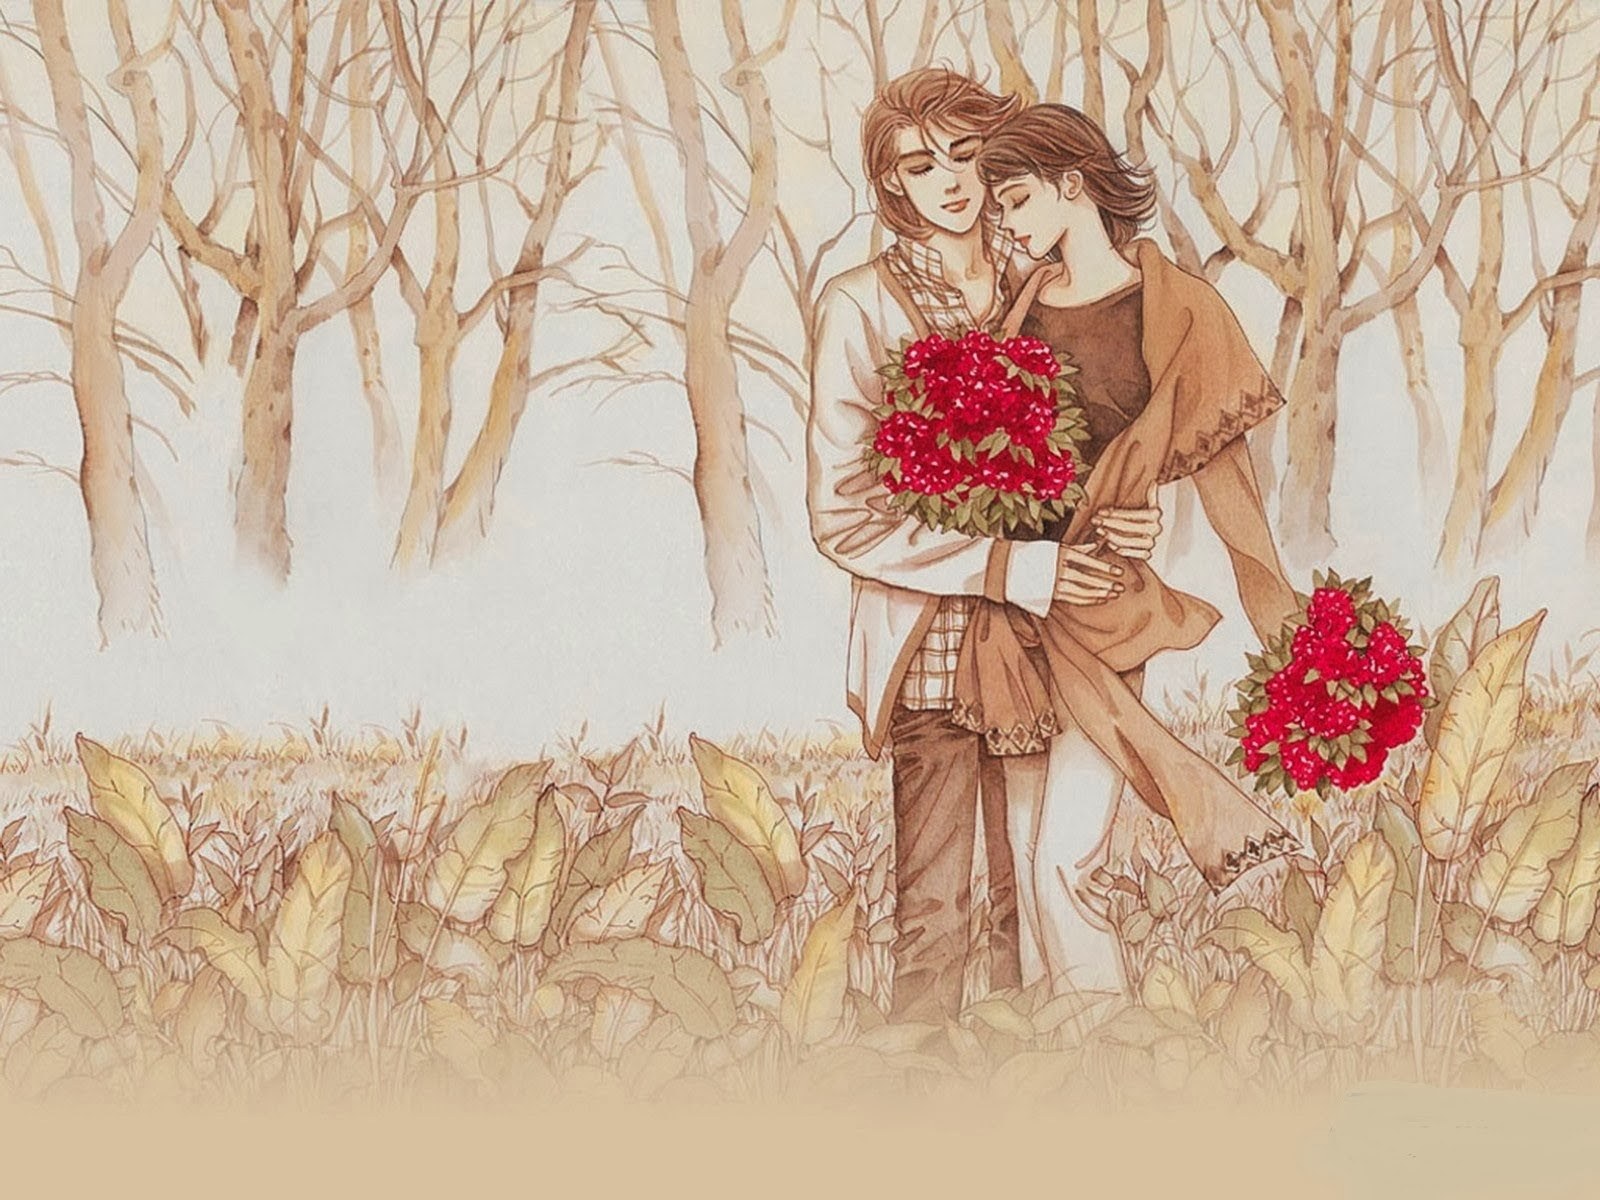 Happy  Hug Day 2014 HD Painting Wallpapers